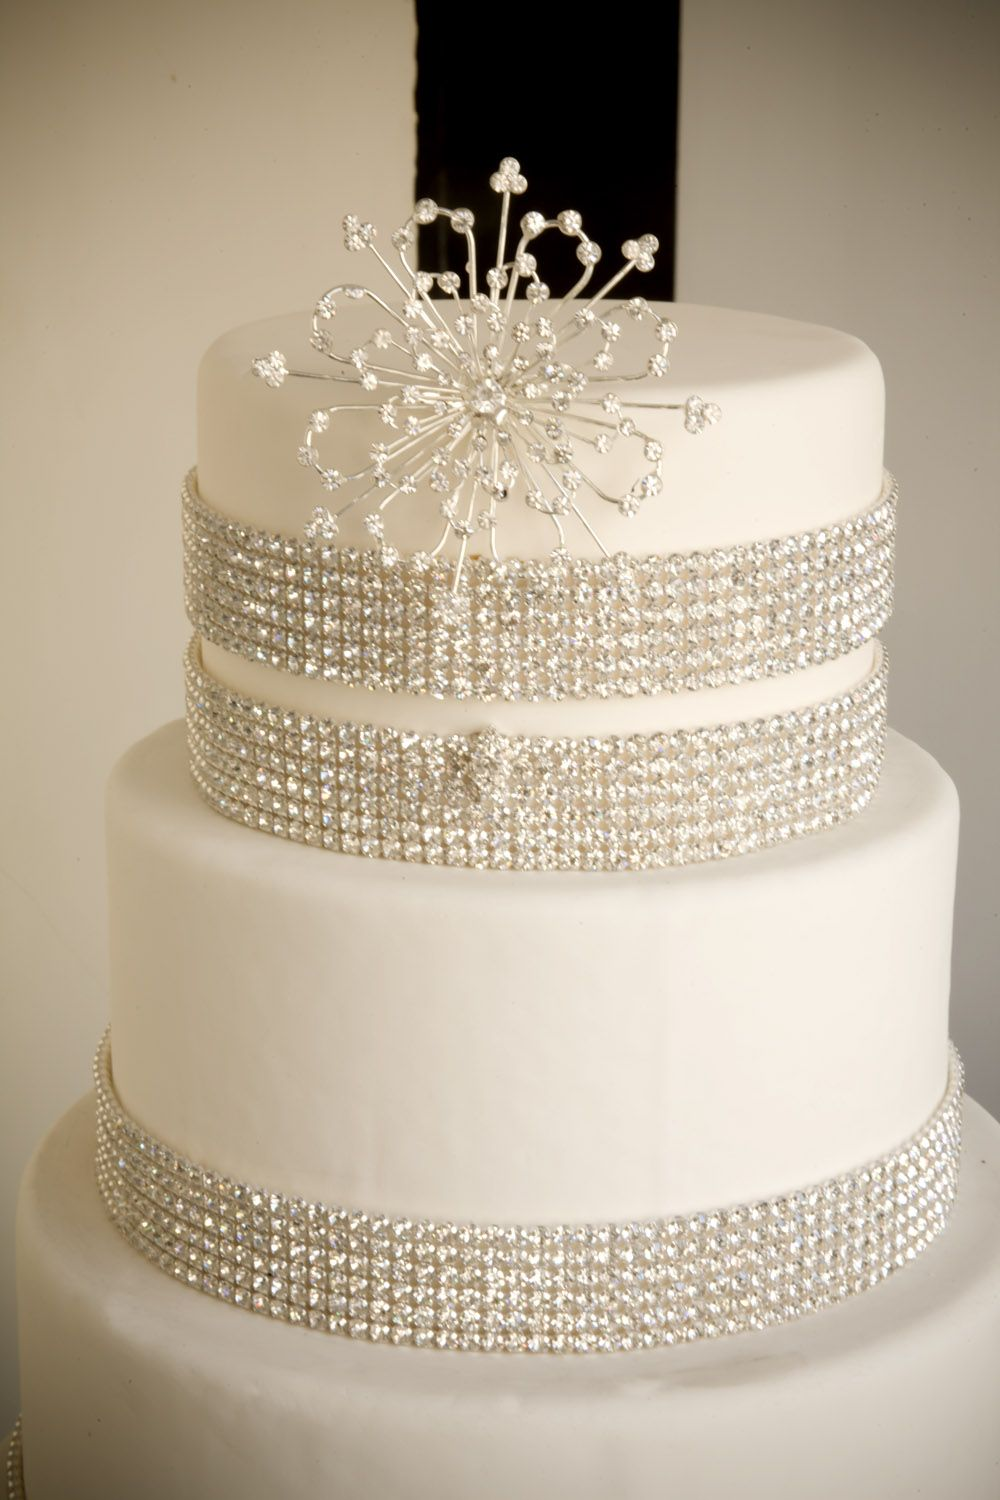 Bands of Crystal ~A Simple Cake: Crystal decorations-More DIY bling ...